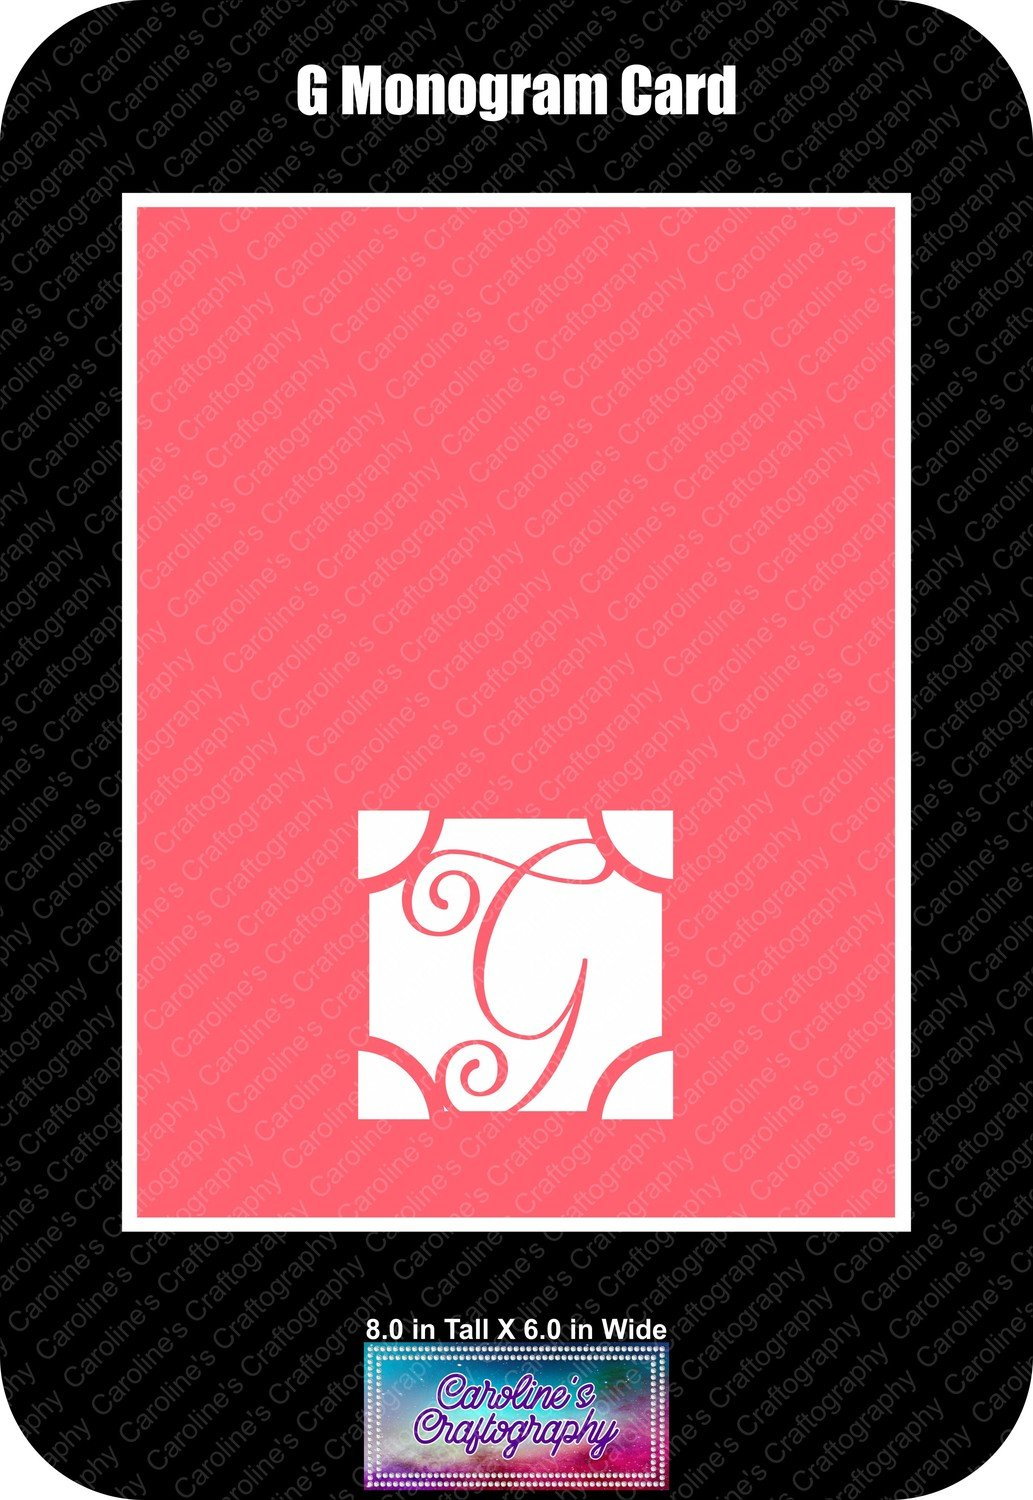 G Monogram Card Base